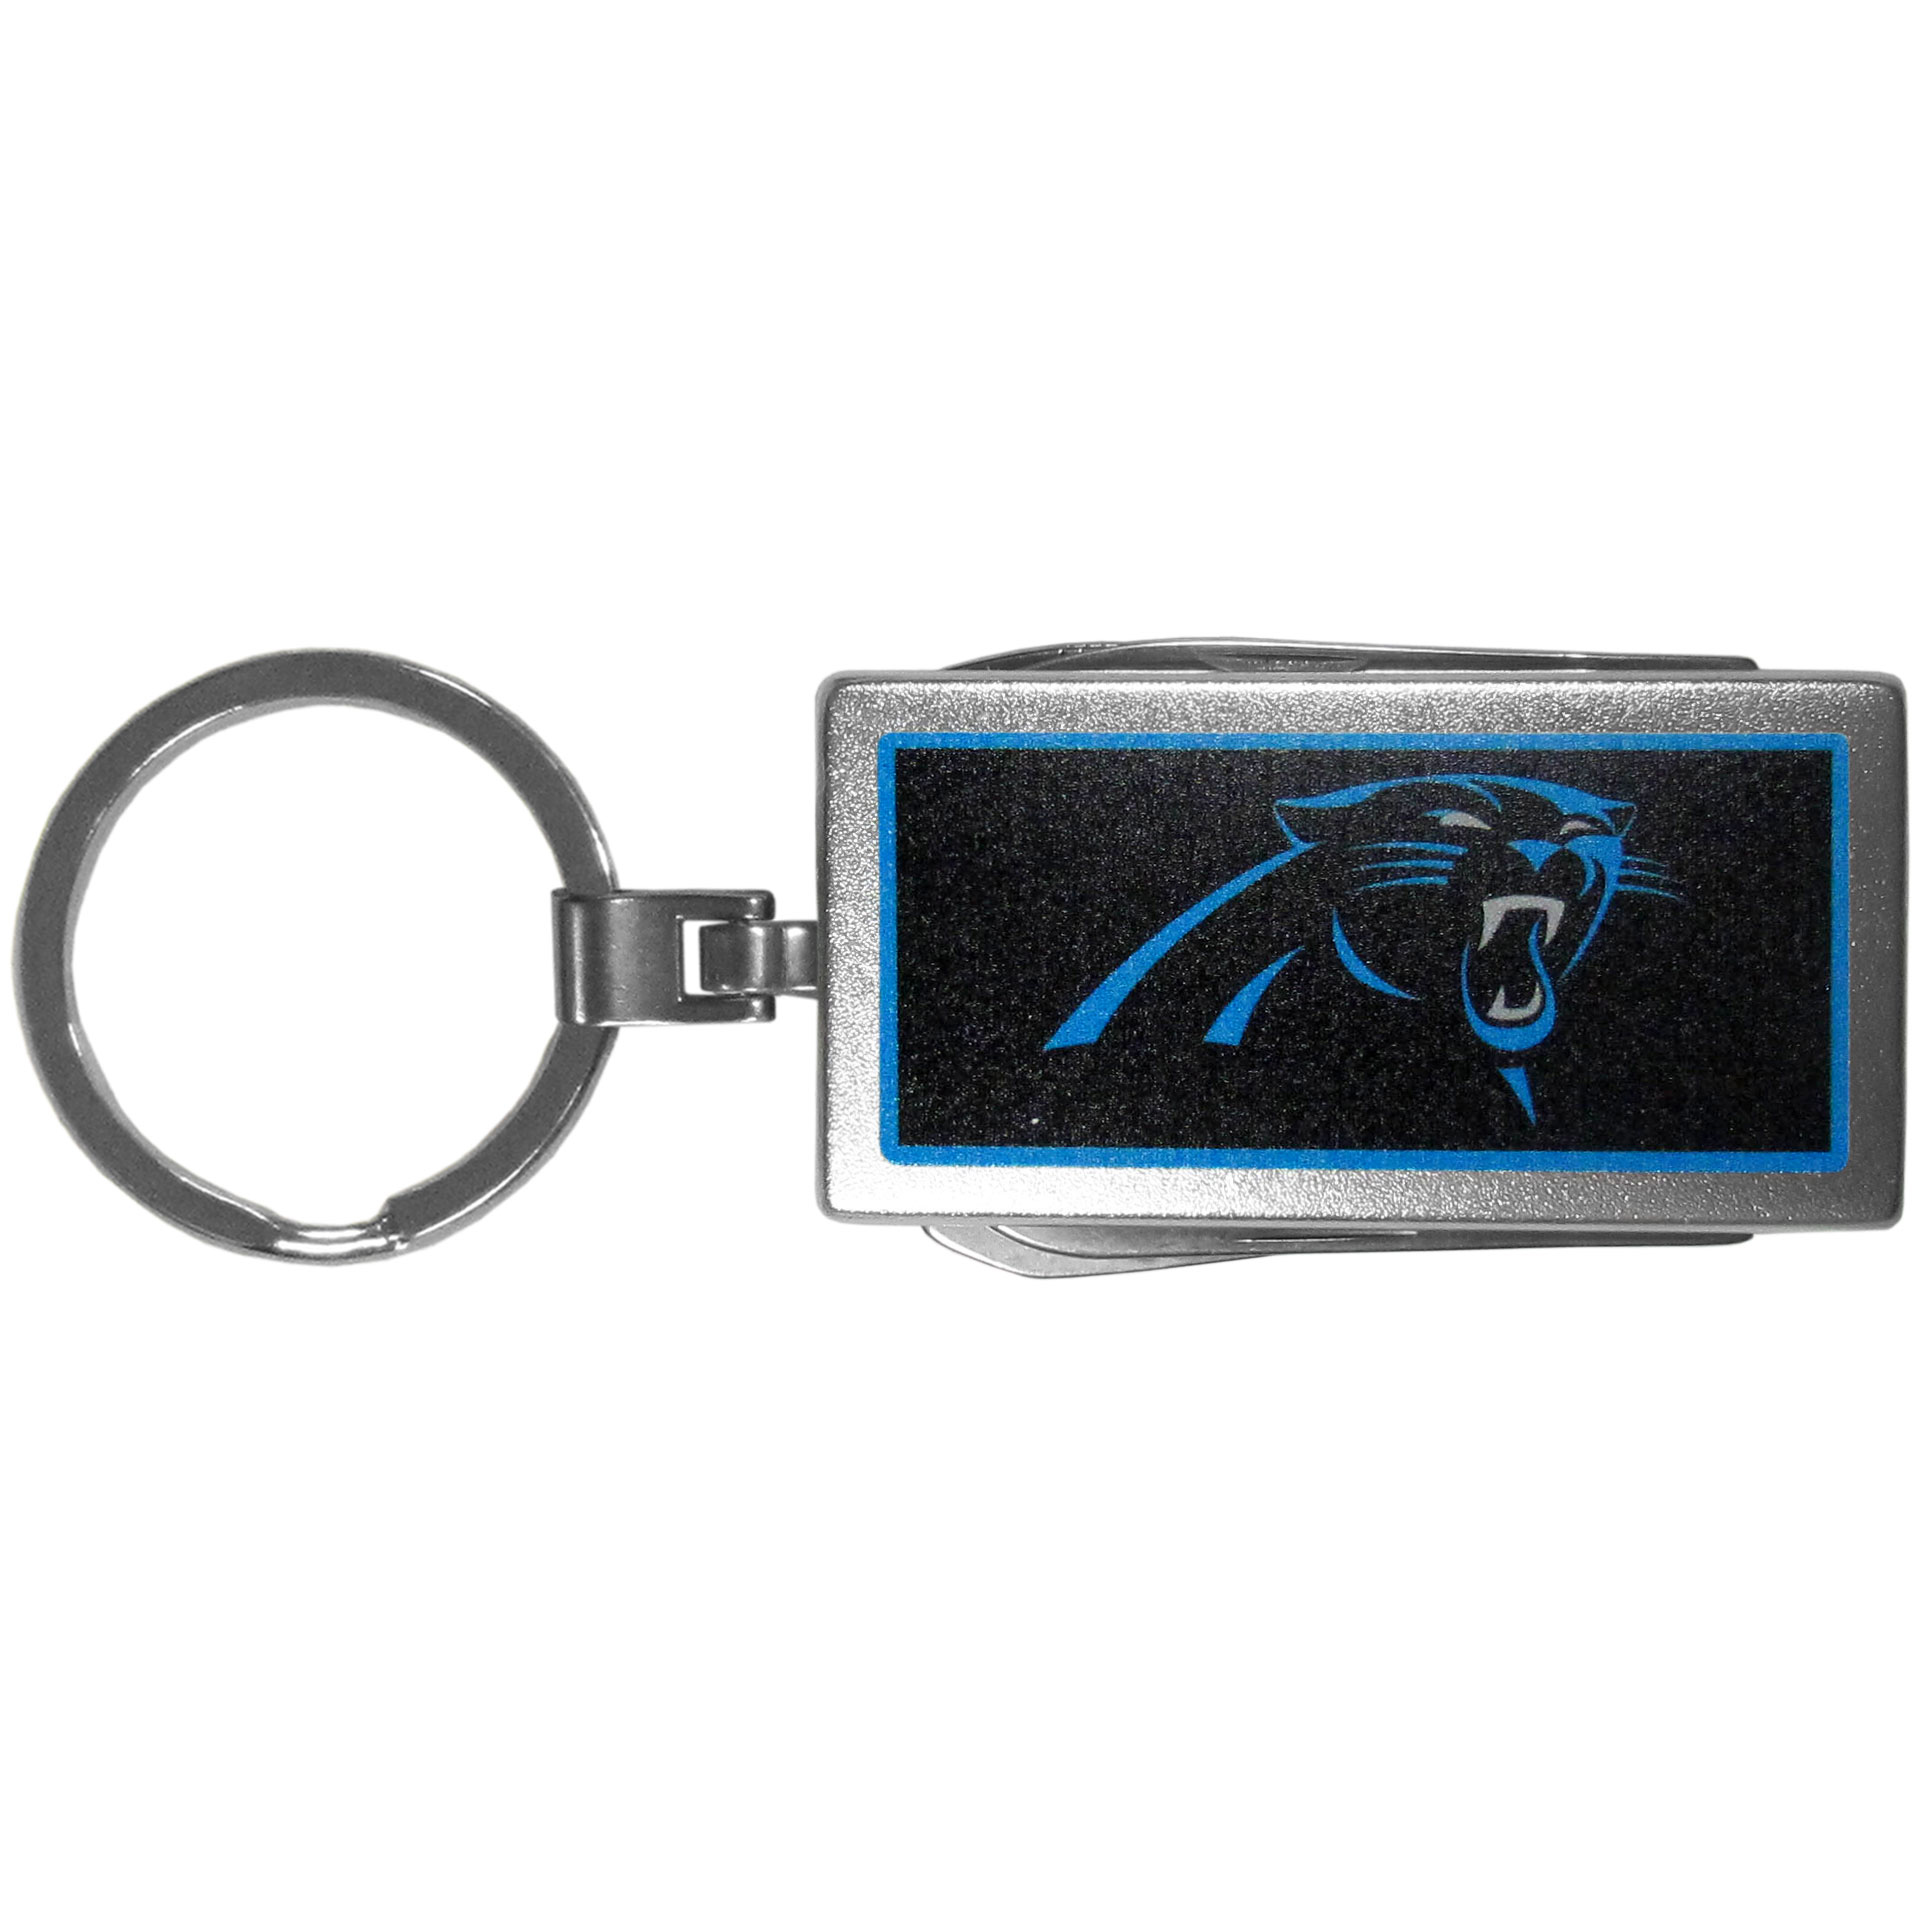 Carolina Panthers Multi-tool Key Chain, Logo - Be the hero at the tailgate, camping, or on a Friday night with your Carolina Panthers Multi-Tool Keychain which comes complete with bottle opener, scissors, knife, nail file and screw driver. Be it opening a package or a beverage Siskiyou's Multi-Tool Keychain goes wherever your keys do. The keychain hangs at 4 inches long when closed.